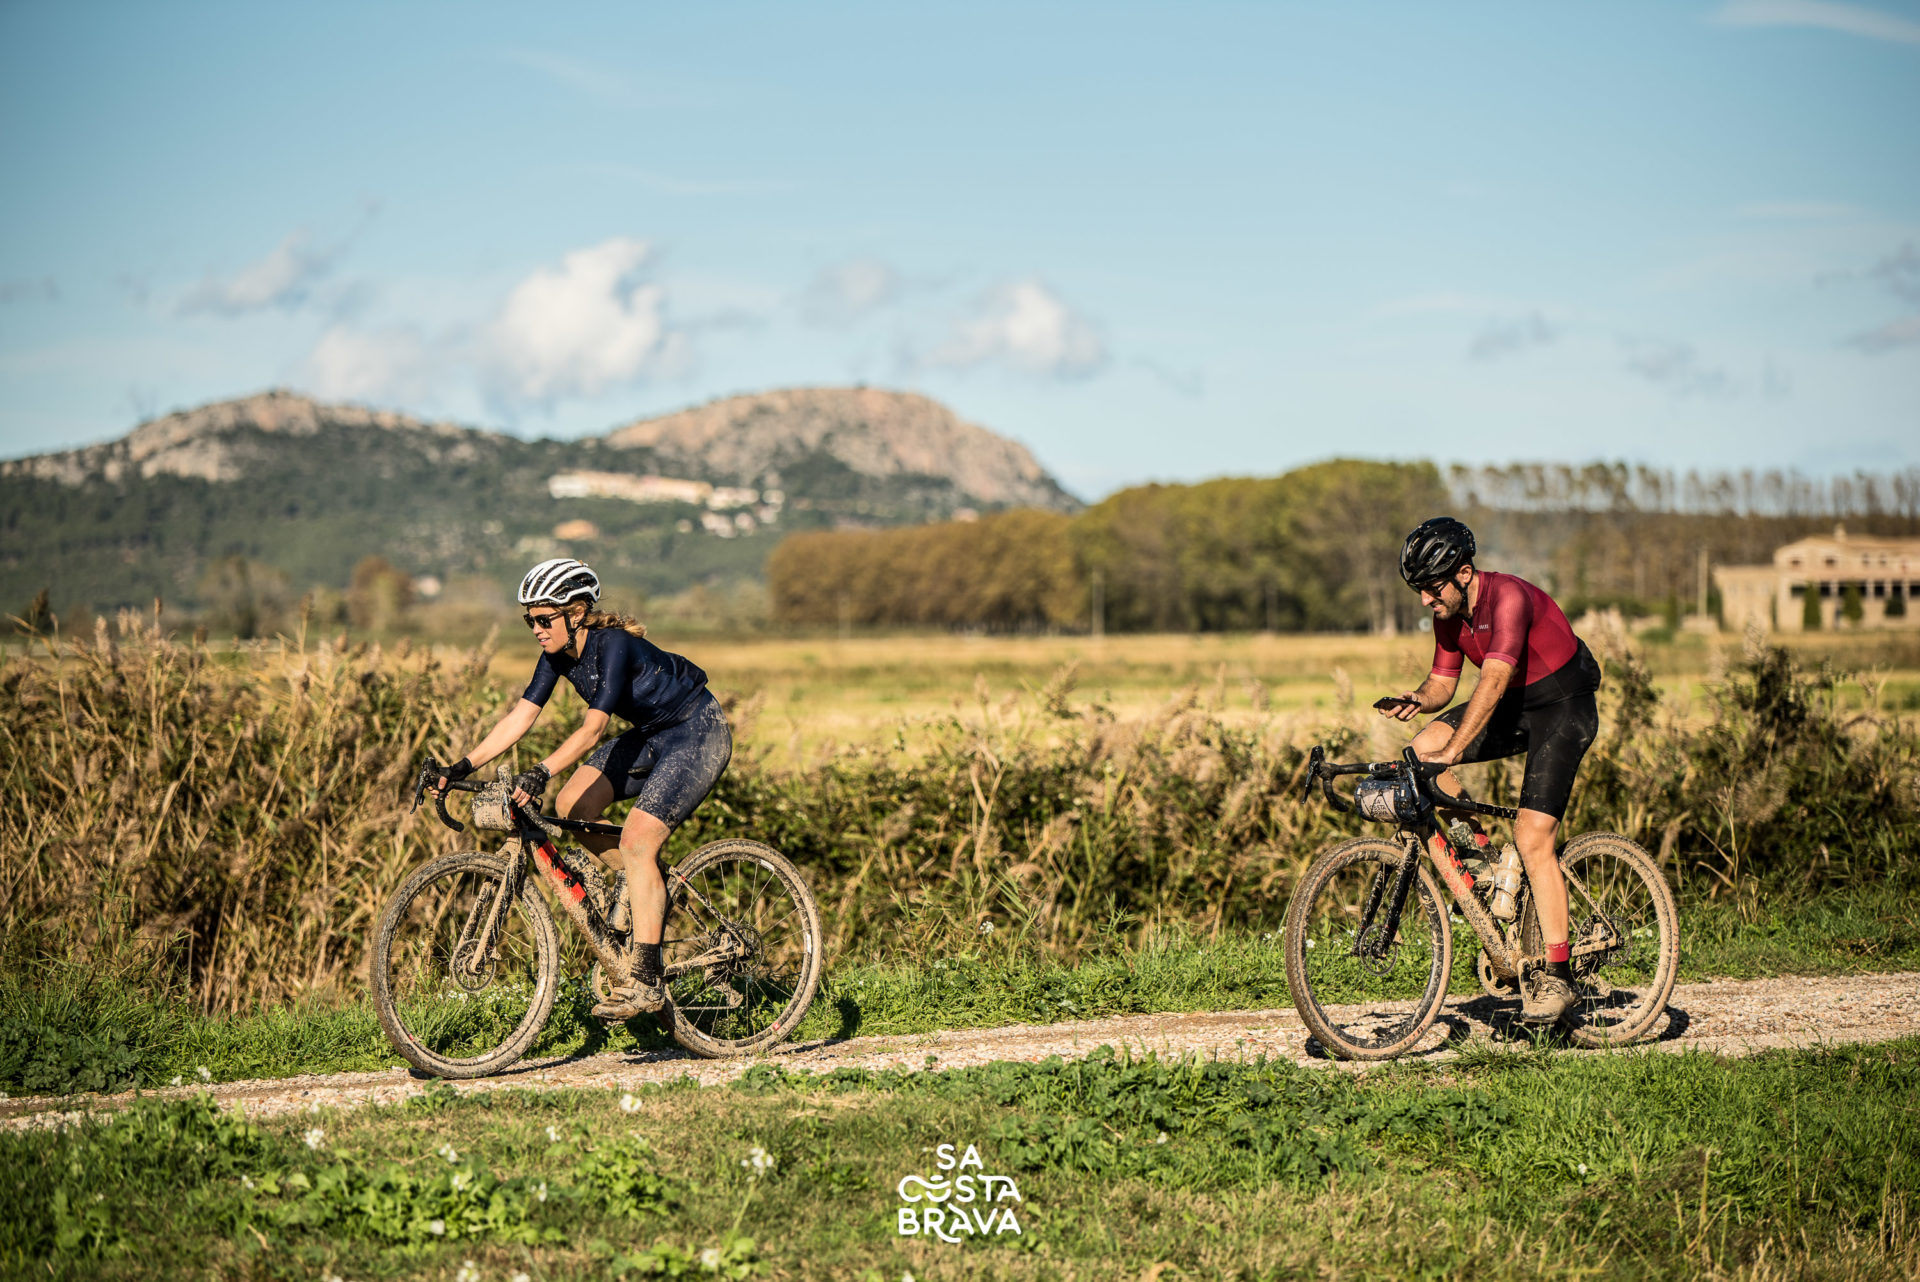 SaCostaBrava – Gravel Adventure